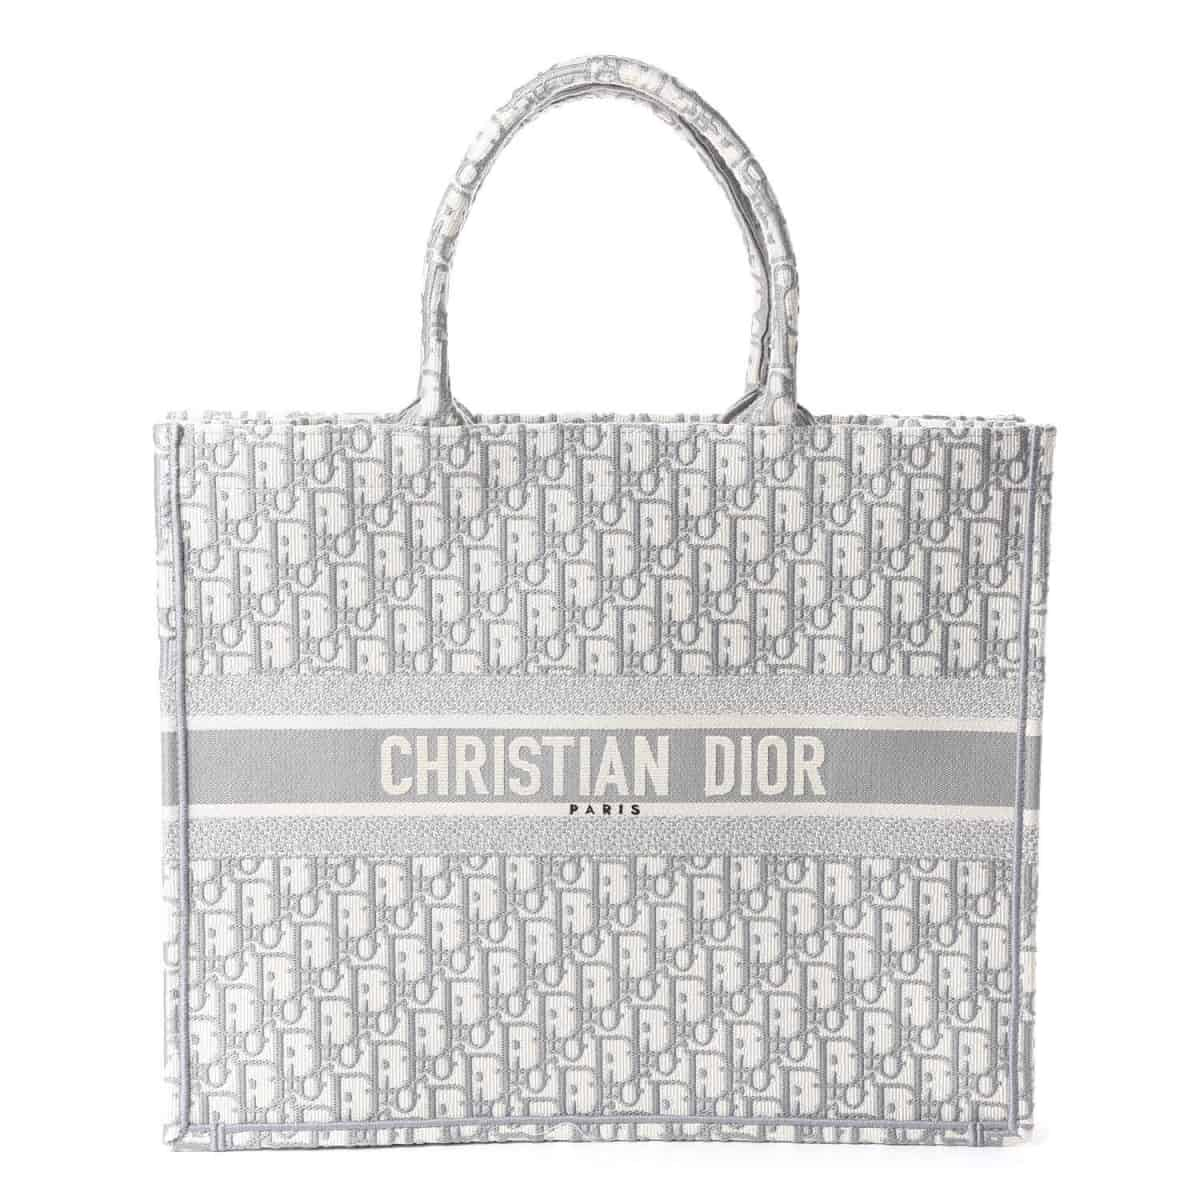 BOLSA DIOR BOOK TOTE CANVAS EMBROIRED CINZA - 2.790,00 10 X 279,00